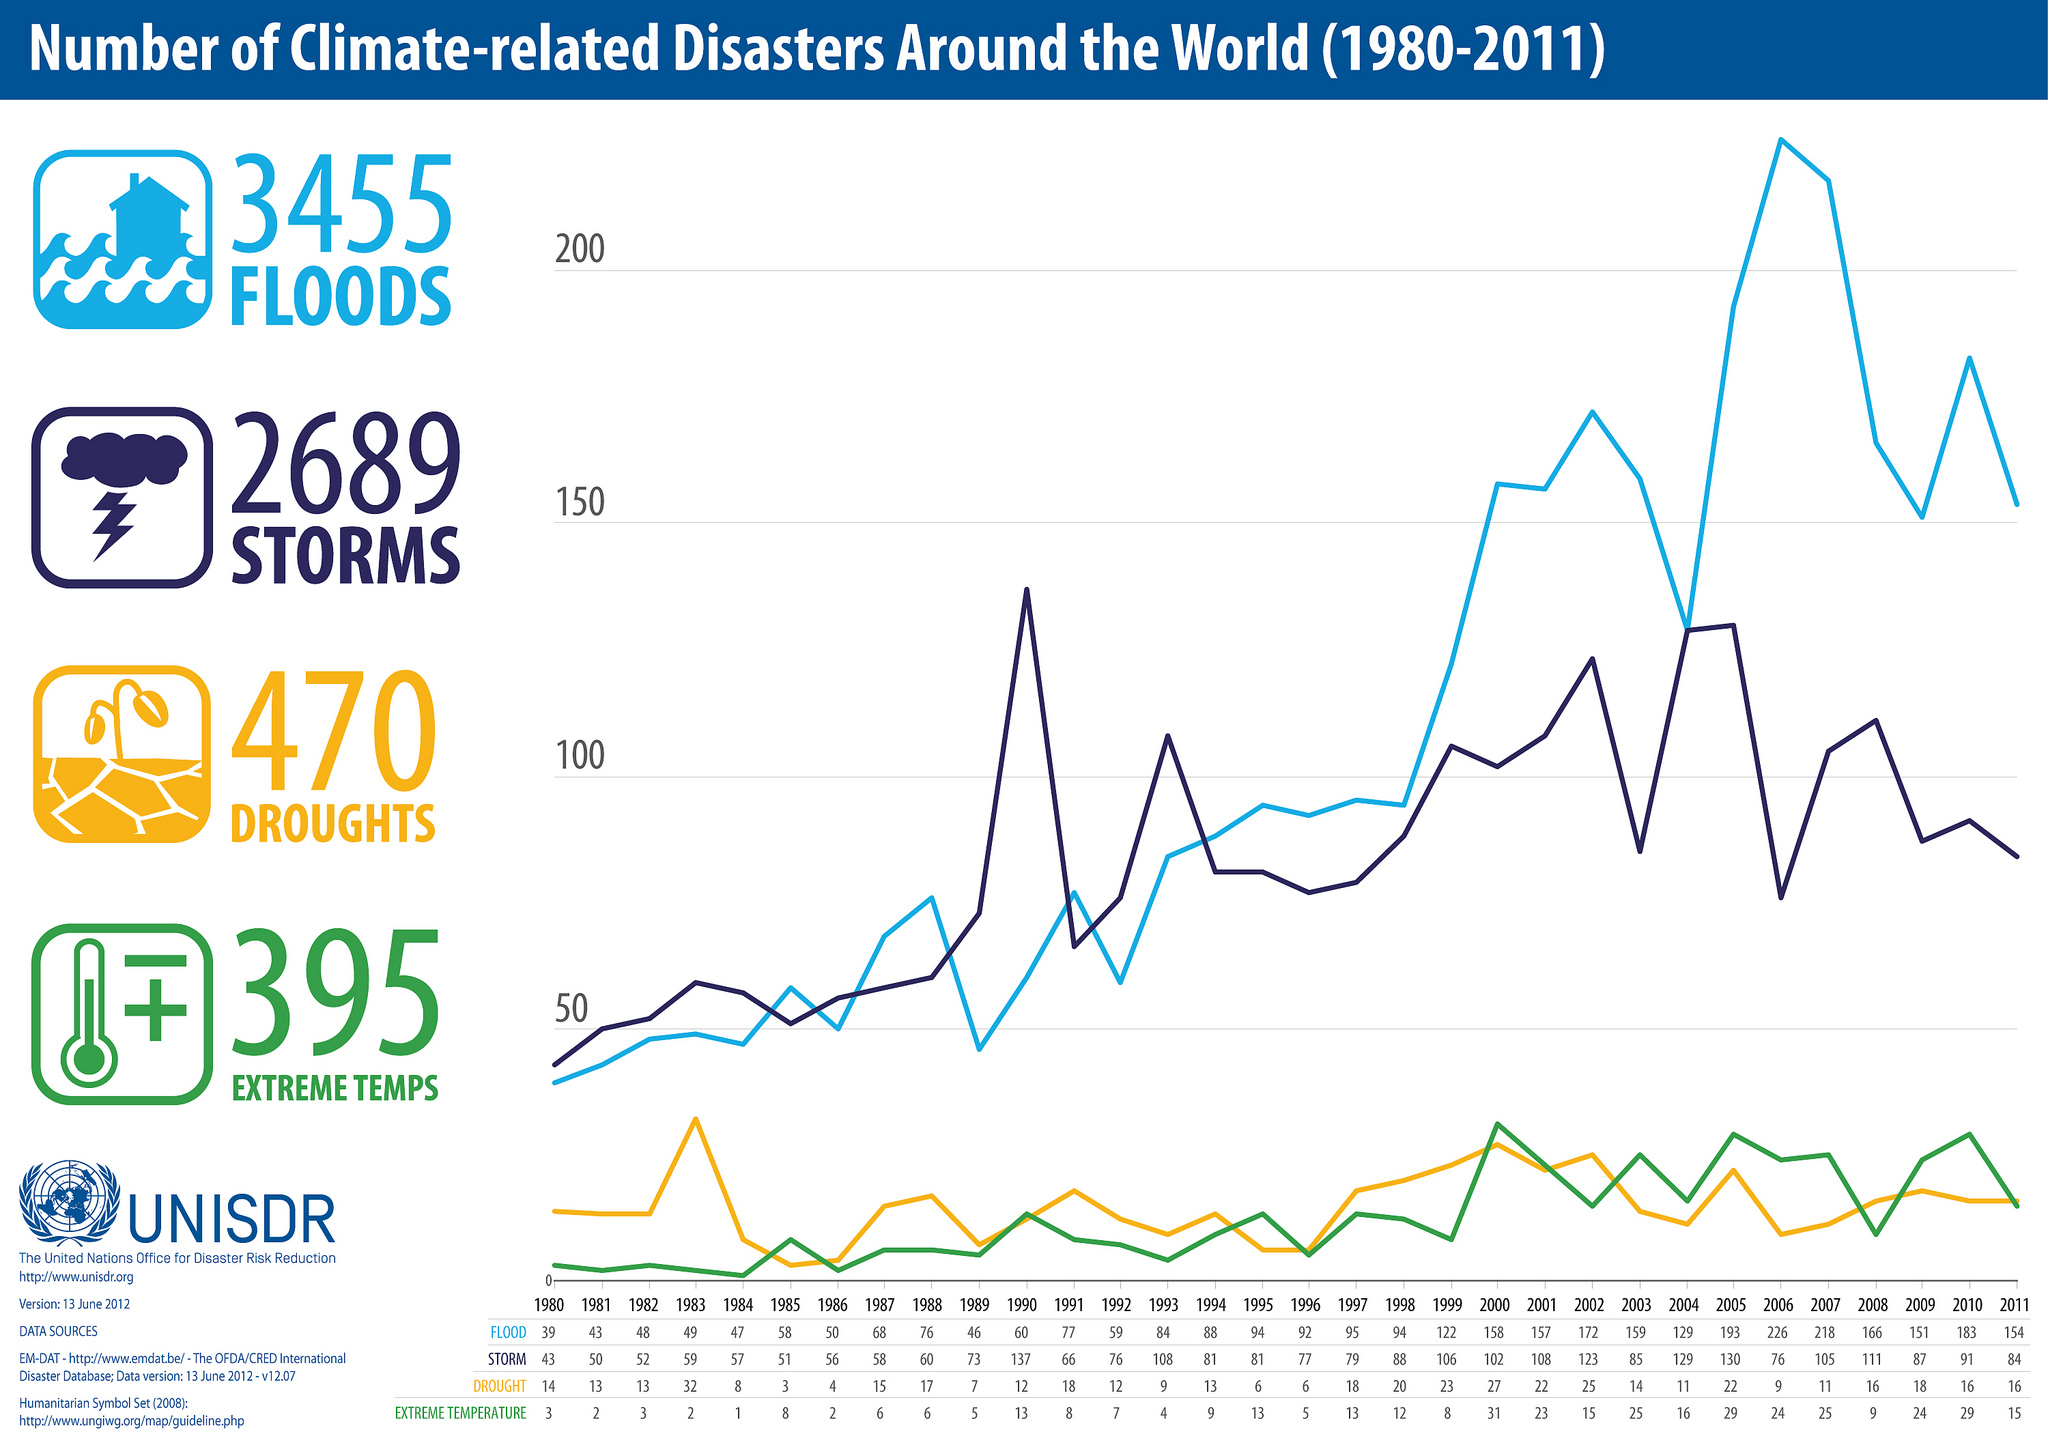 Climate Related Disasters Worldwide 1980-2011 (UNISDR)